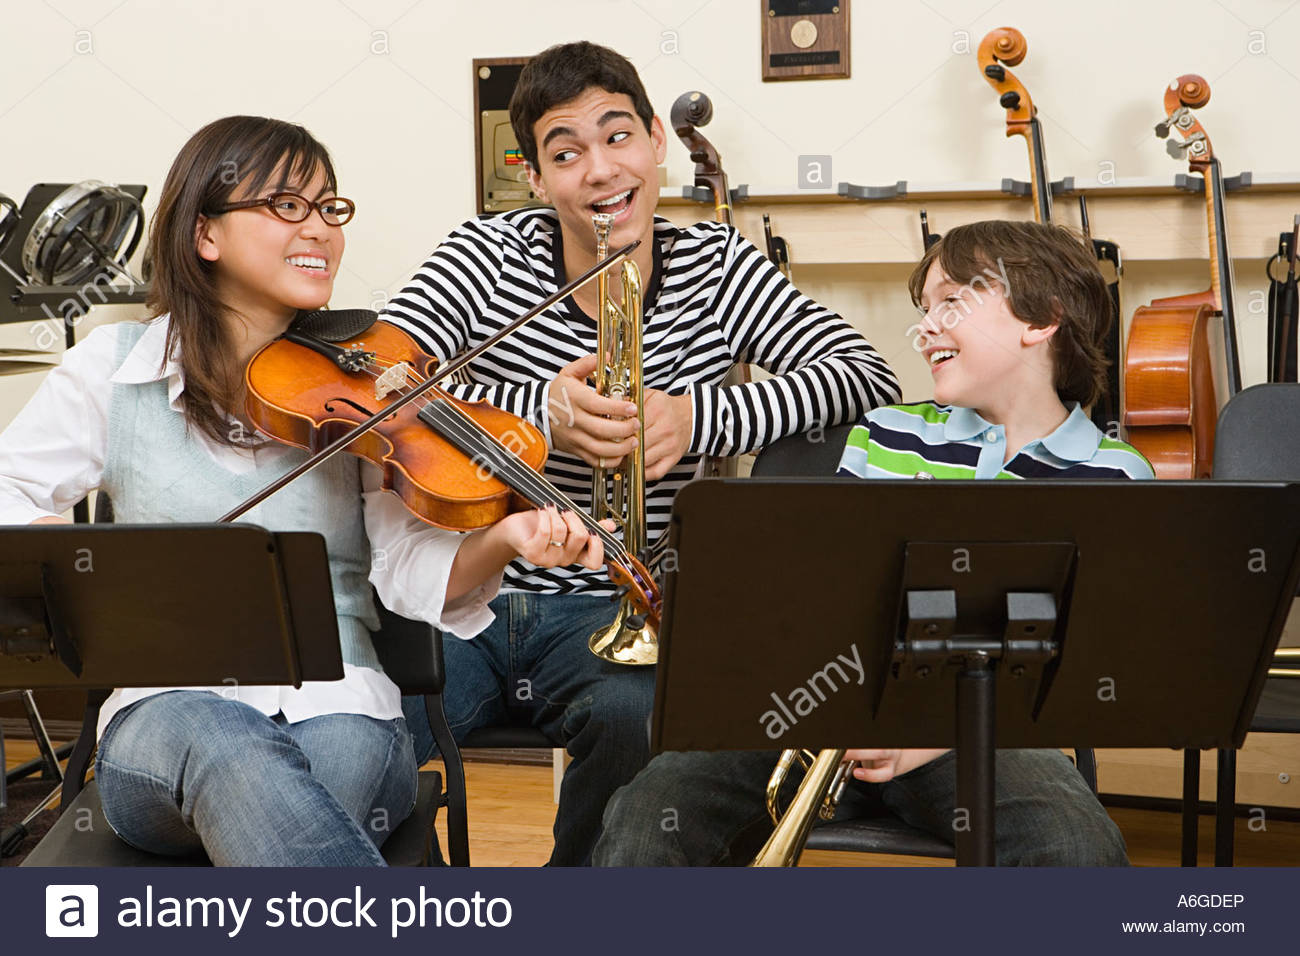 Friends at band practice - Stock Image